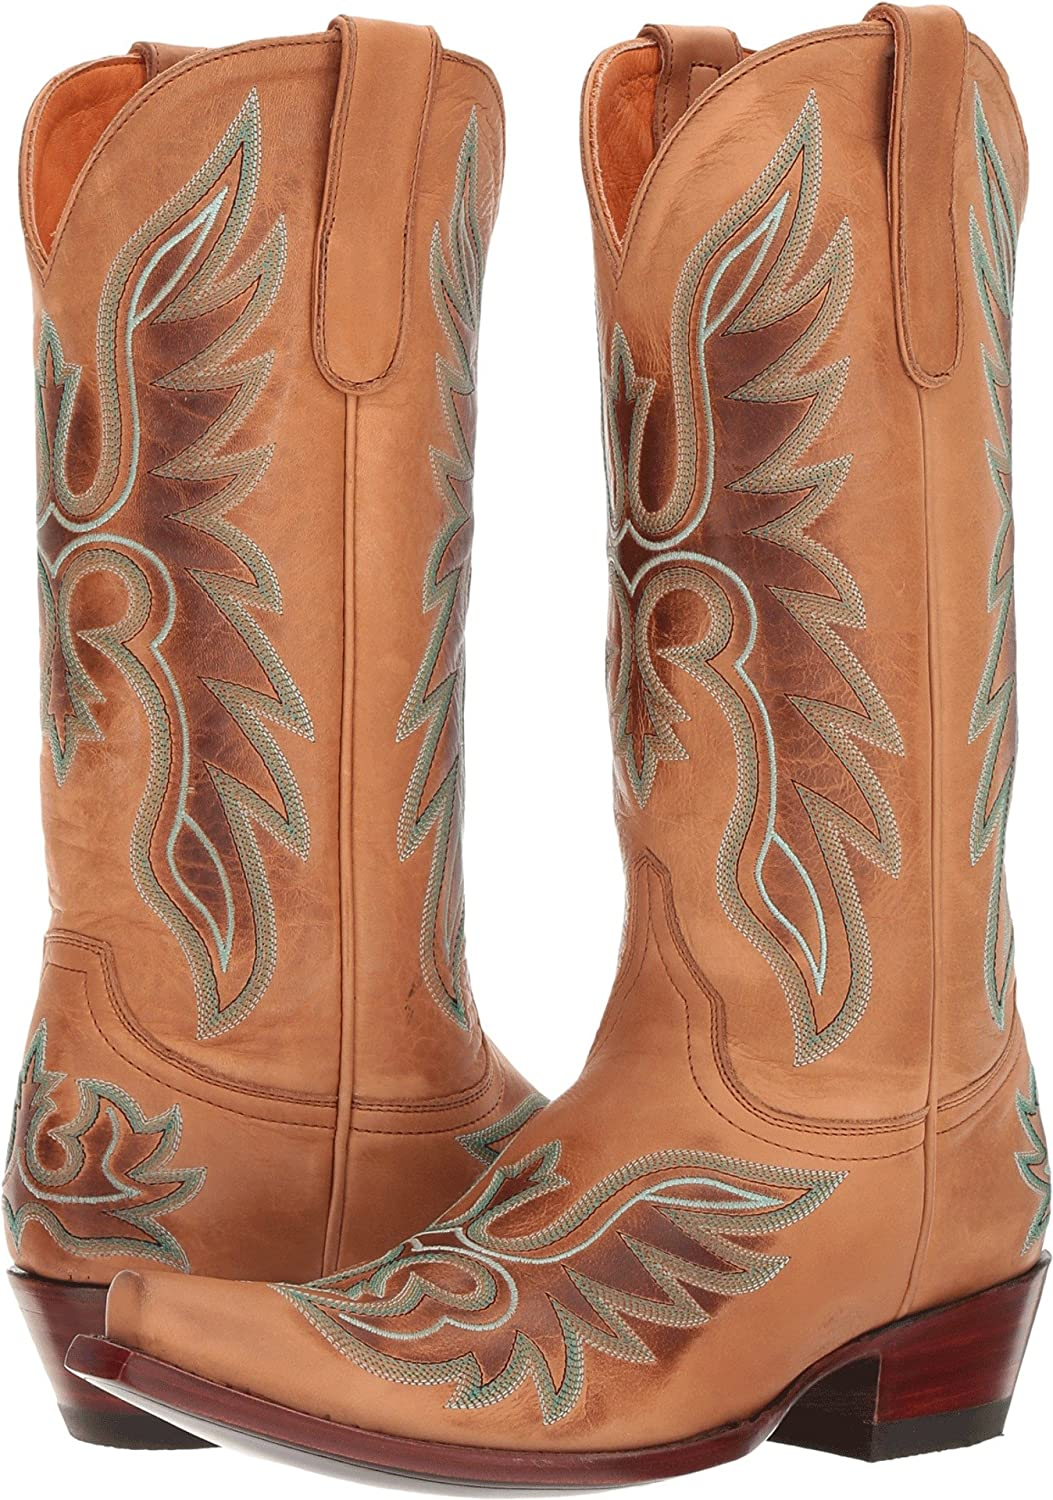 Old Gringo Womens Brave B06XD5D64S 8 B(M) US|Taupe/White